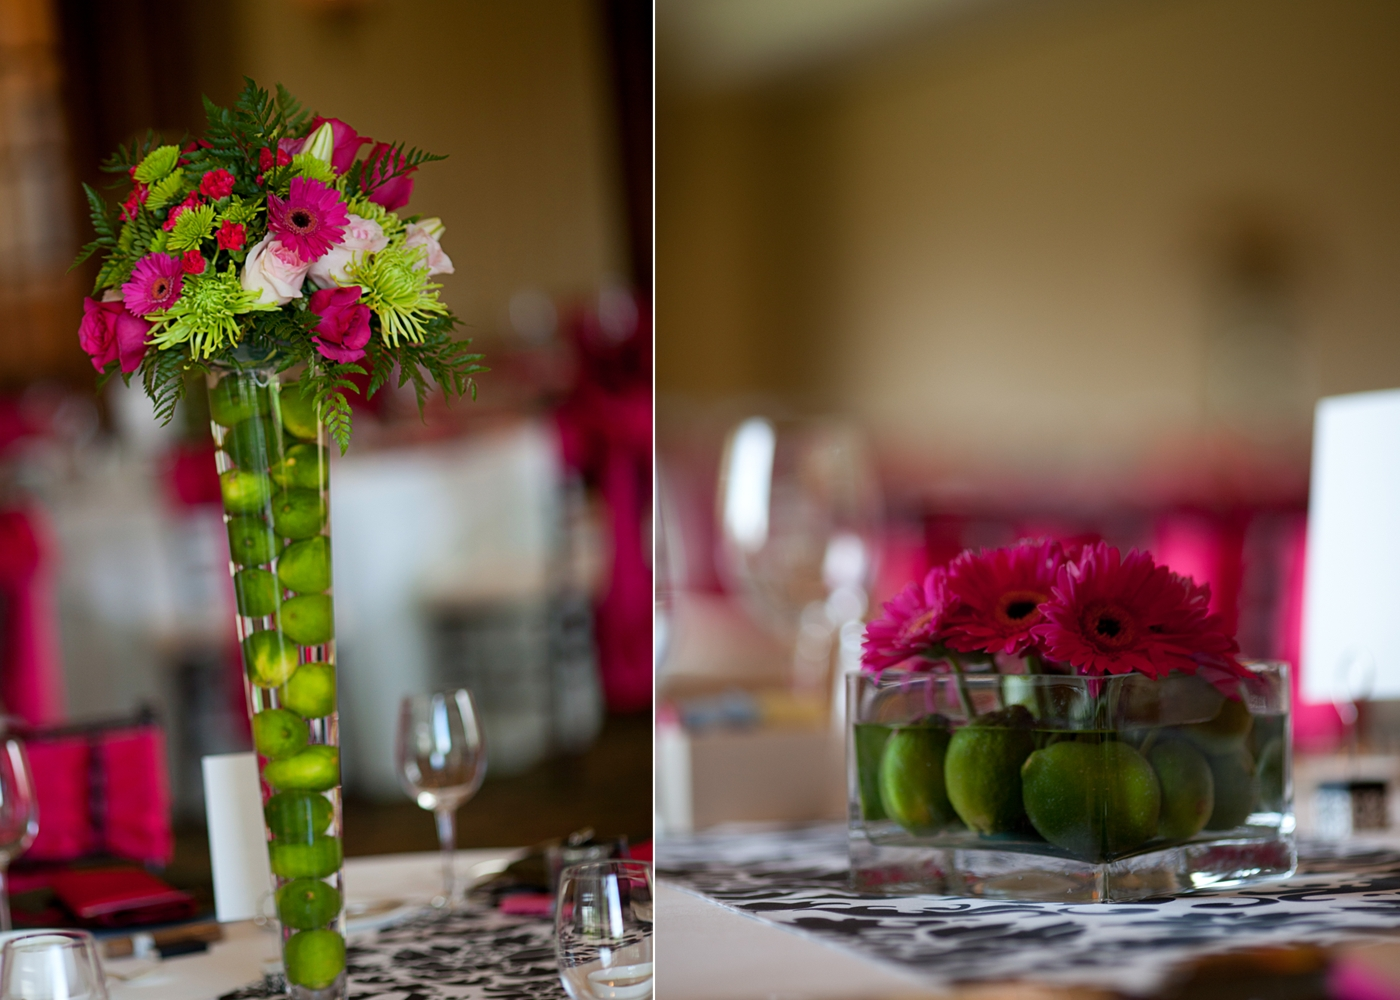 10 Awesome Pink And Green Wedding Ideas table arrangements for wedding reception wedding centerpieces 2020